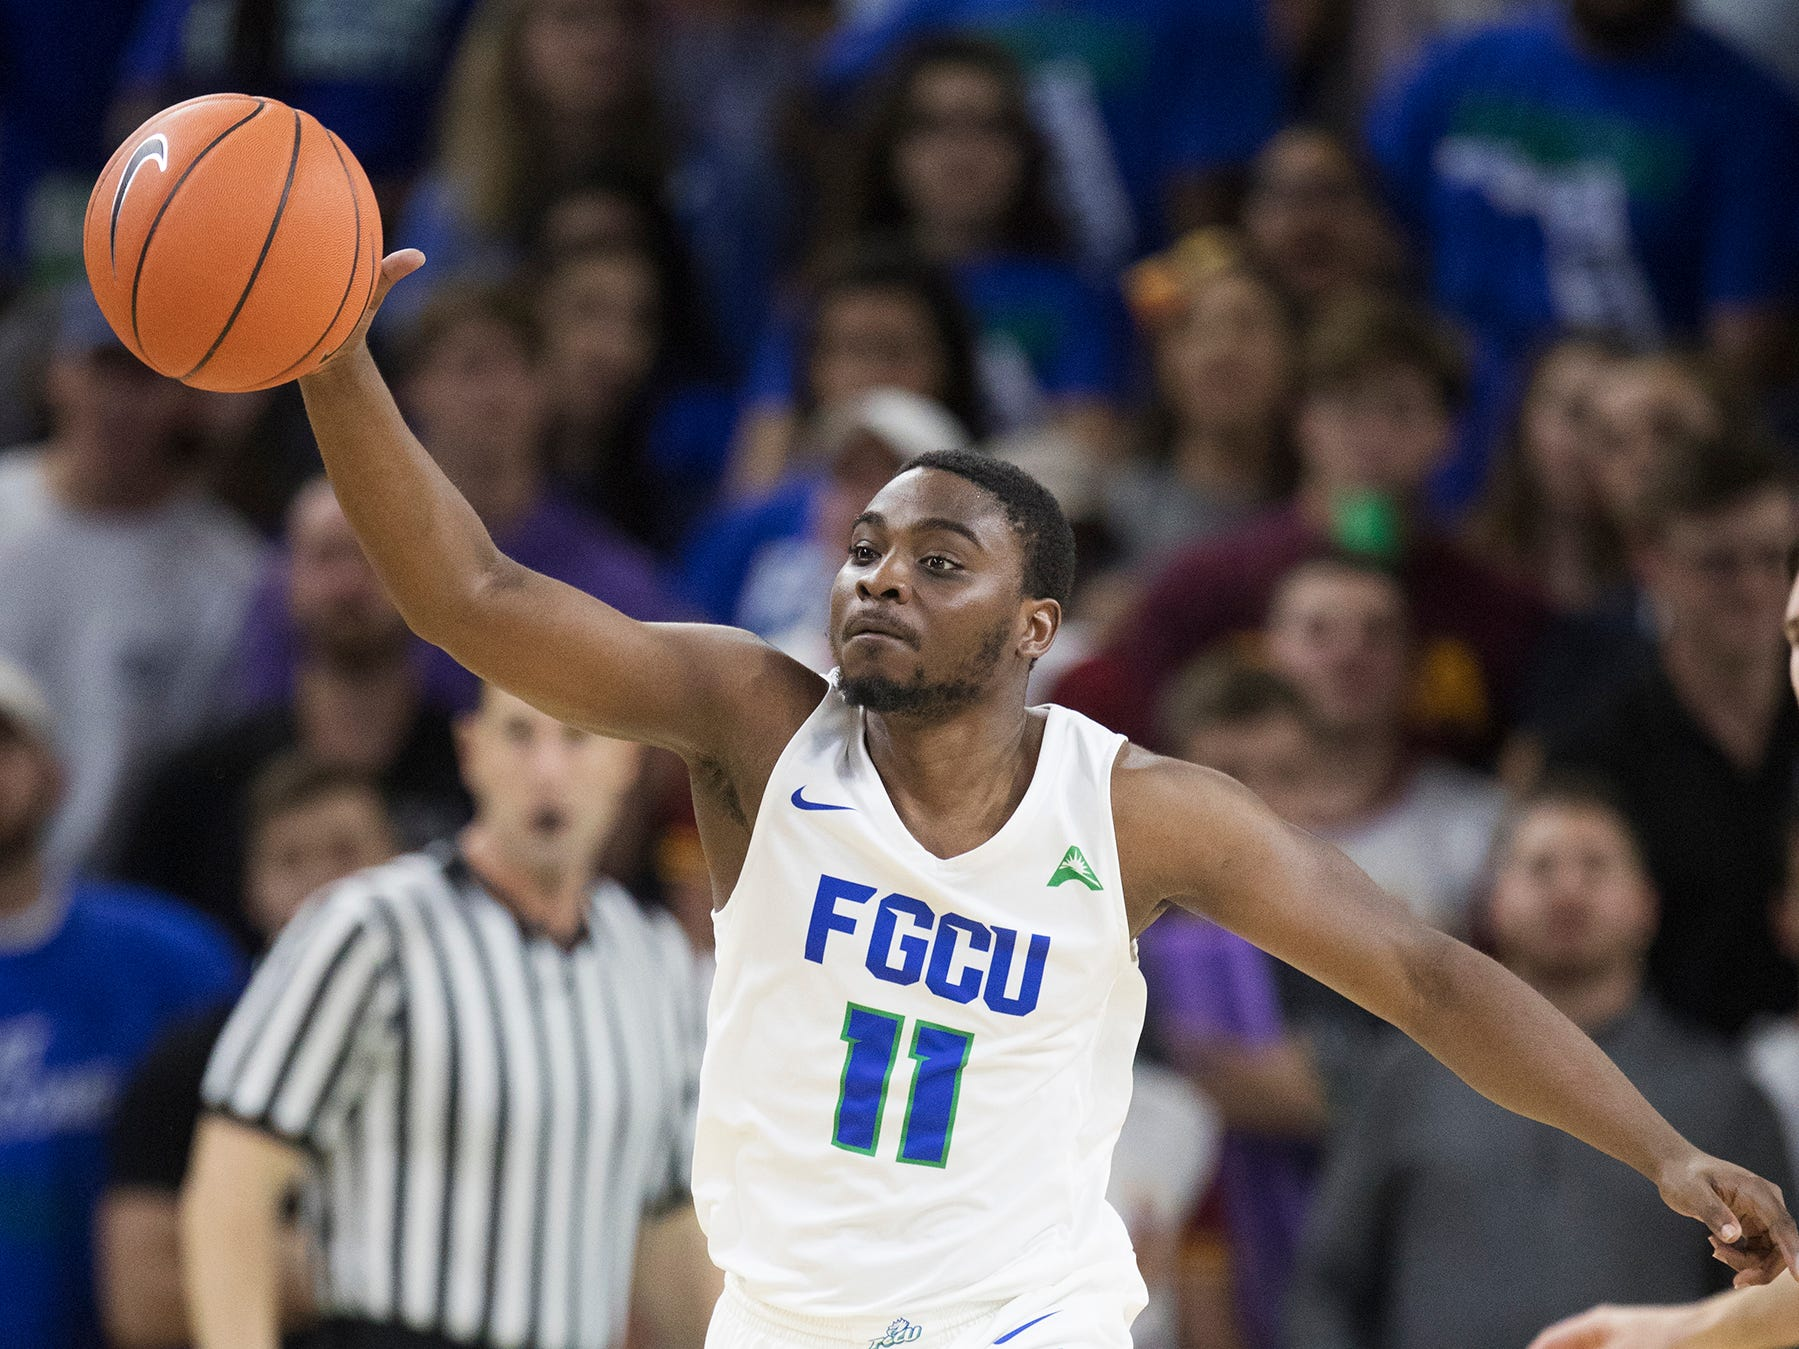 Florida Gulf Coast University's Schadrac Casimir leads a fast break against Lipscomb on Wednesday at FGCU in Fort Myers. FGCU beat Lipscomb 67-61.